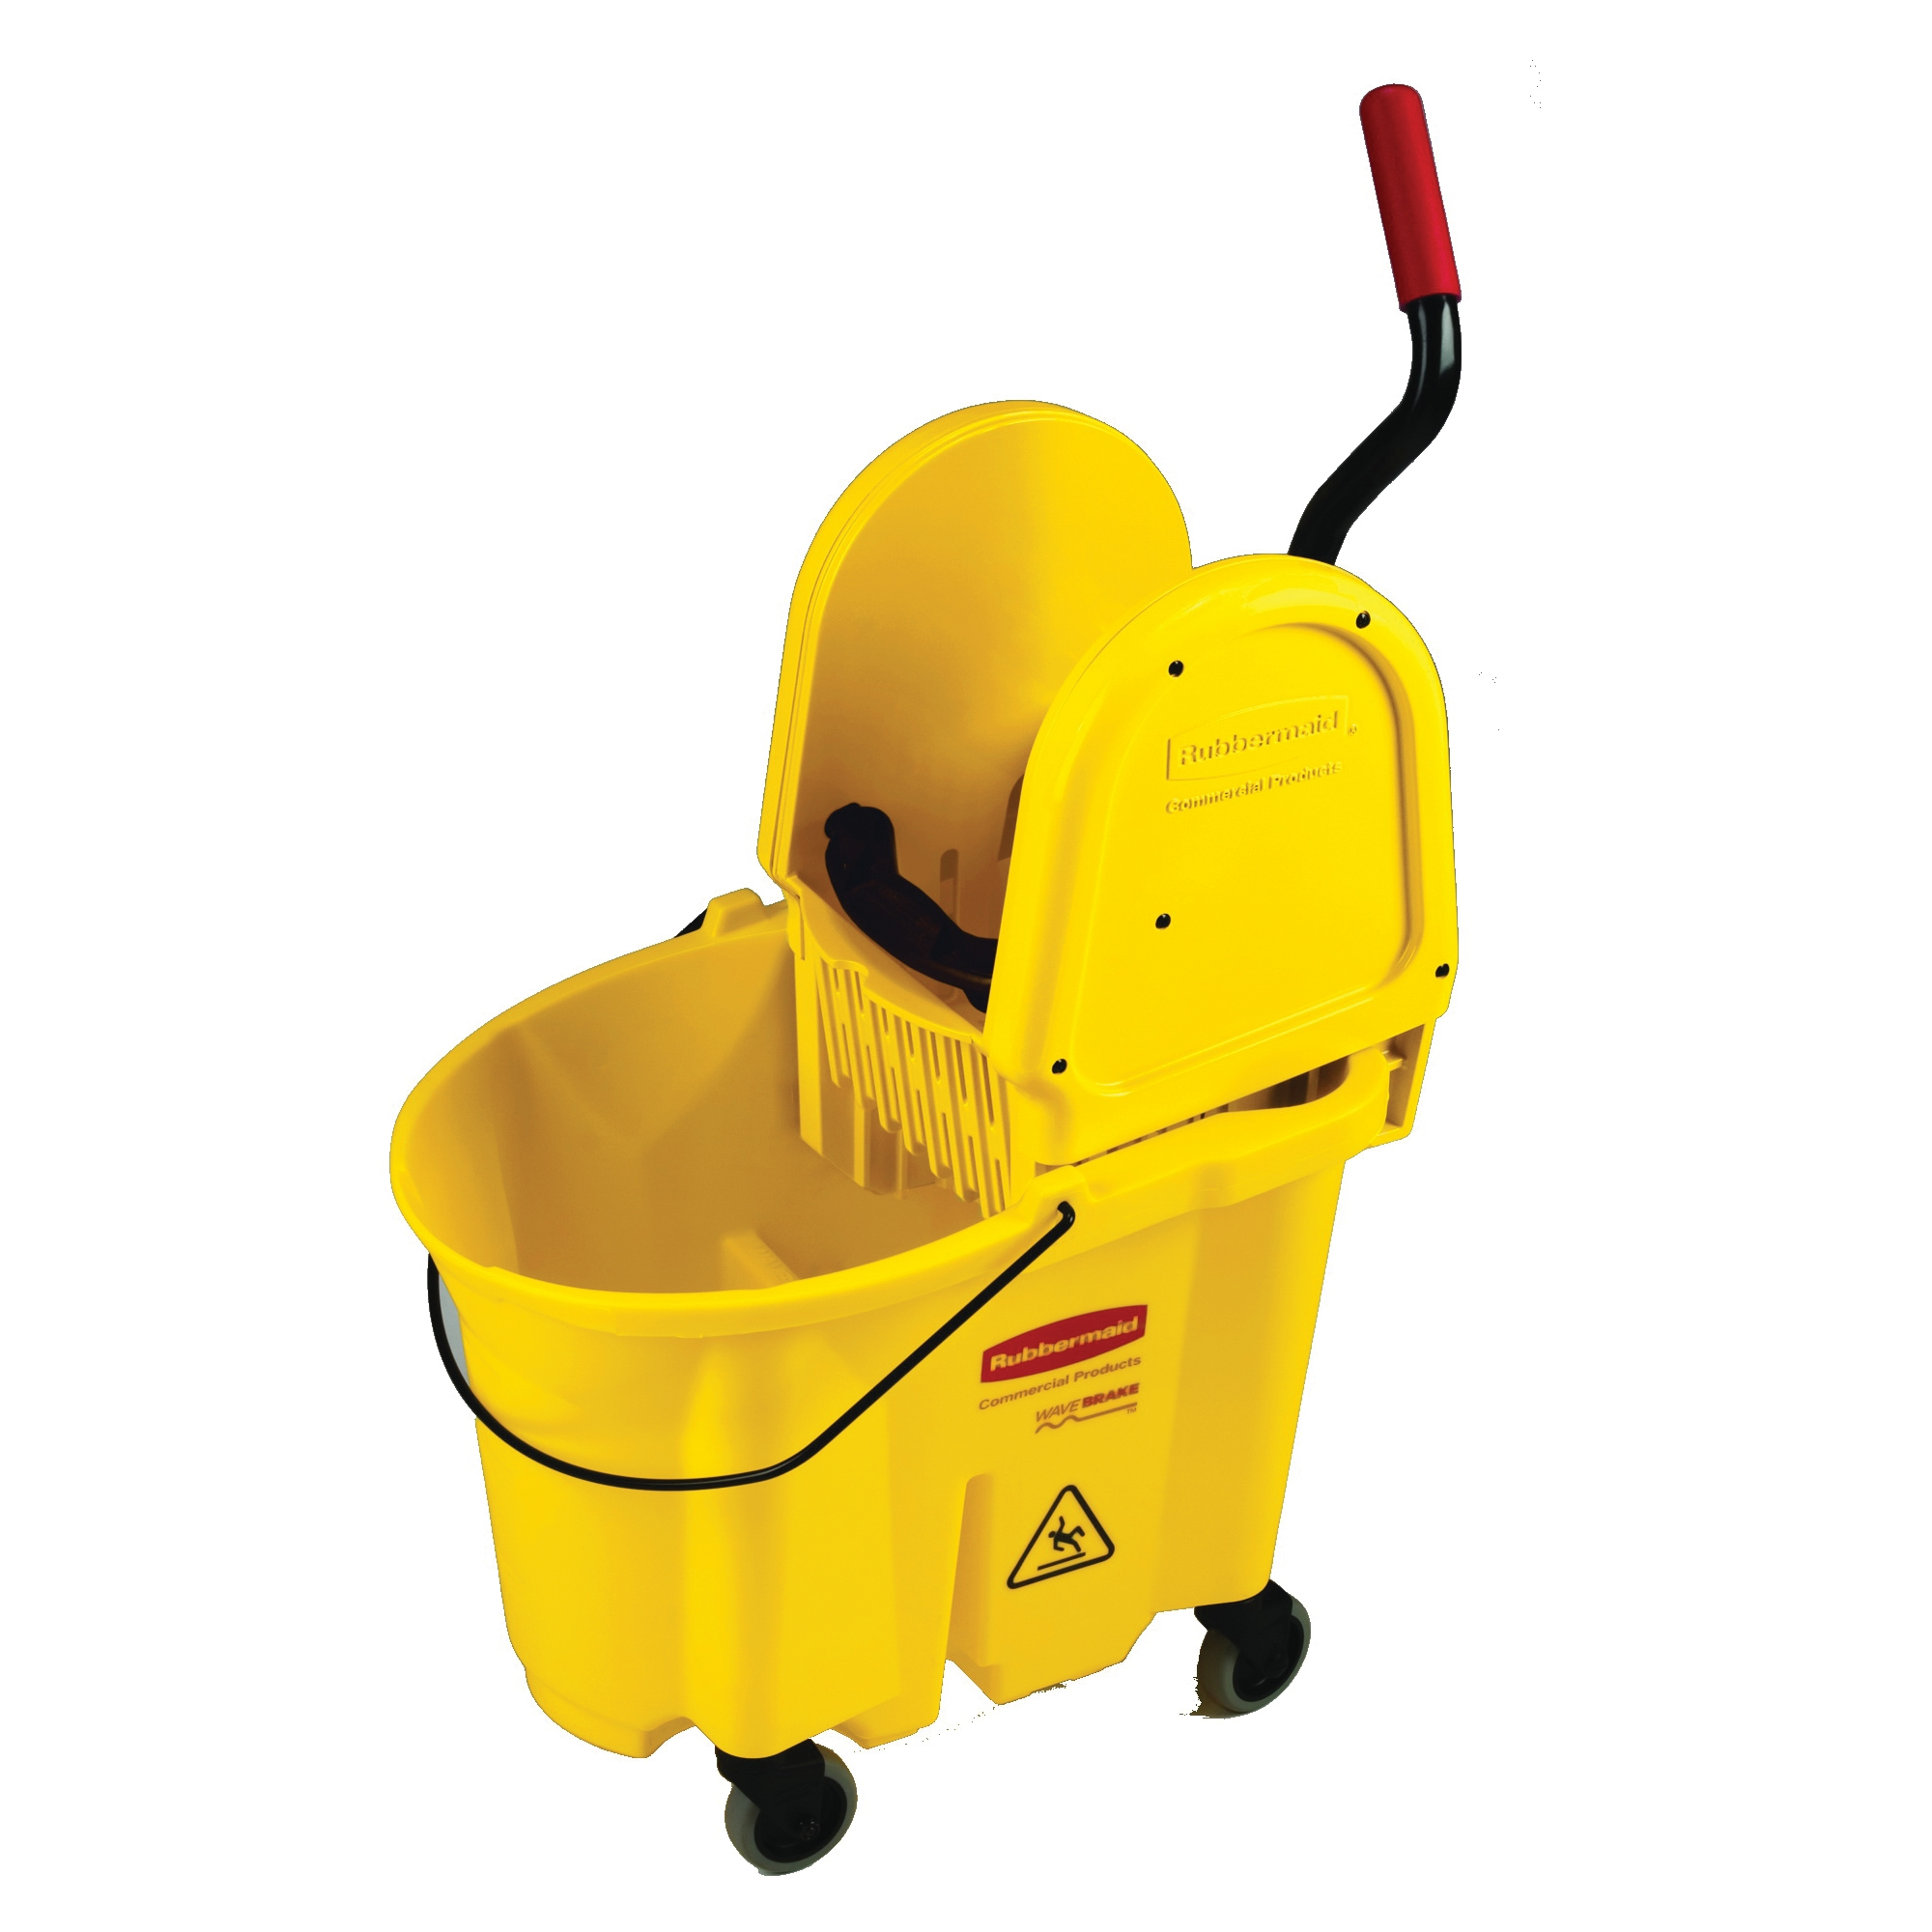 Picture of Rubbermaid FG757788YEL Mop Bucket and Wringer Combo, 35 qt Capacity, Rectangular, Polypropylene Bucket/Pail